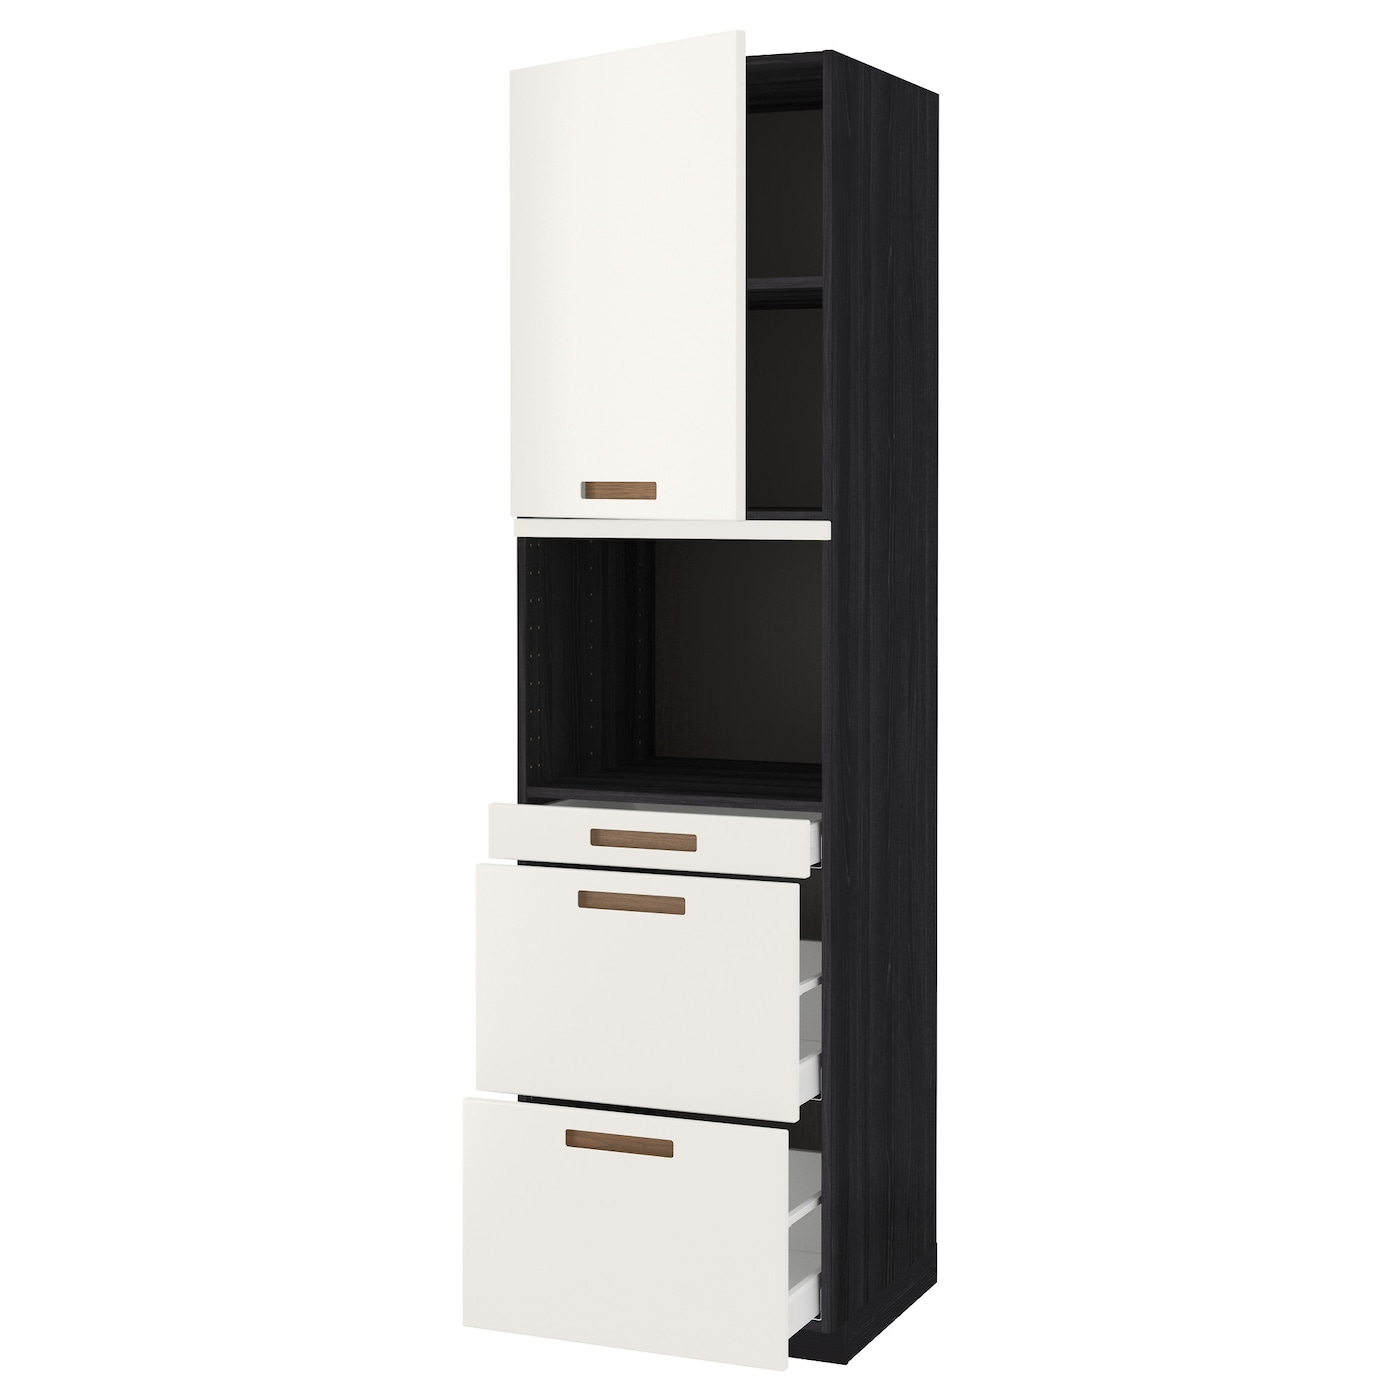 IKEA METOD/MAXIMERA hi cab f micro combi w door/3 drwrs Sturdy frame construction, 18 mm thick.